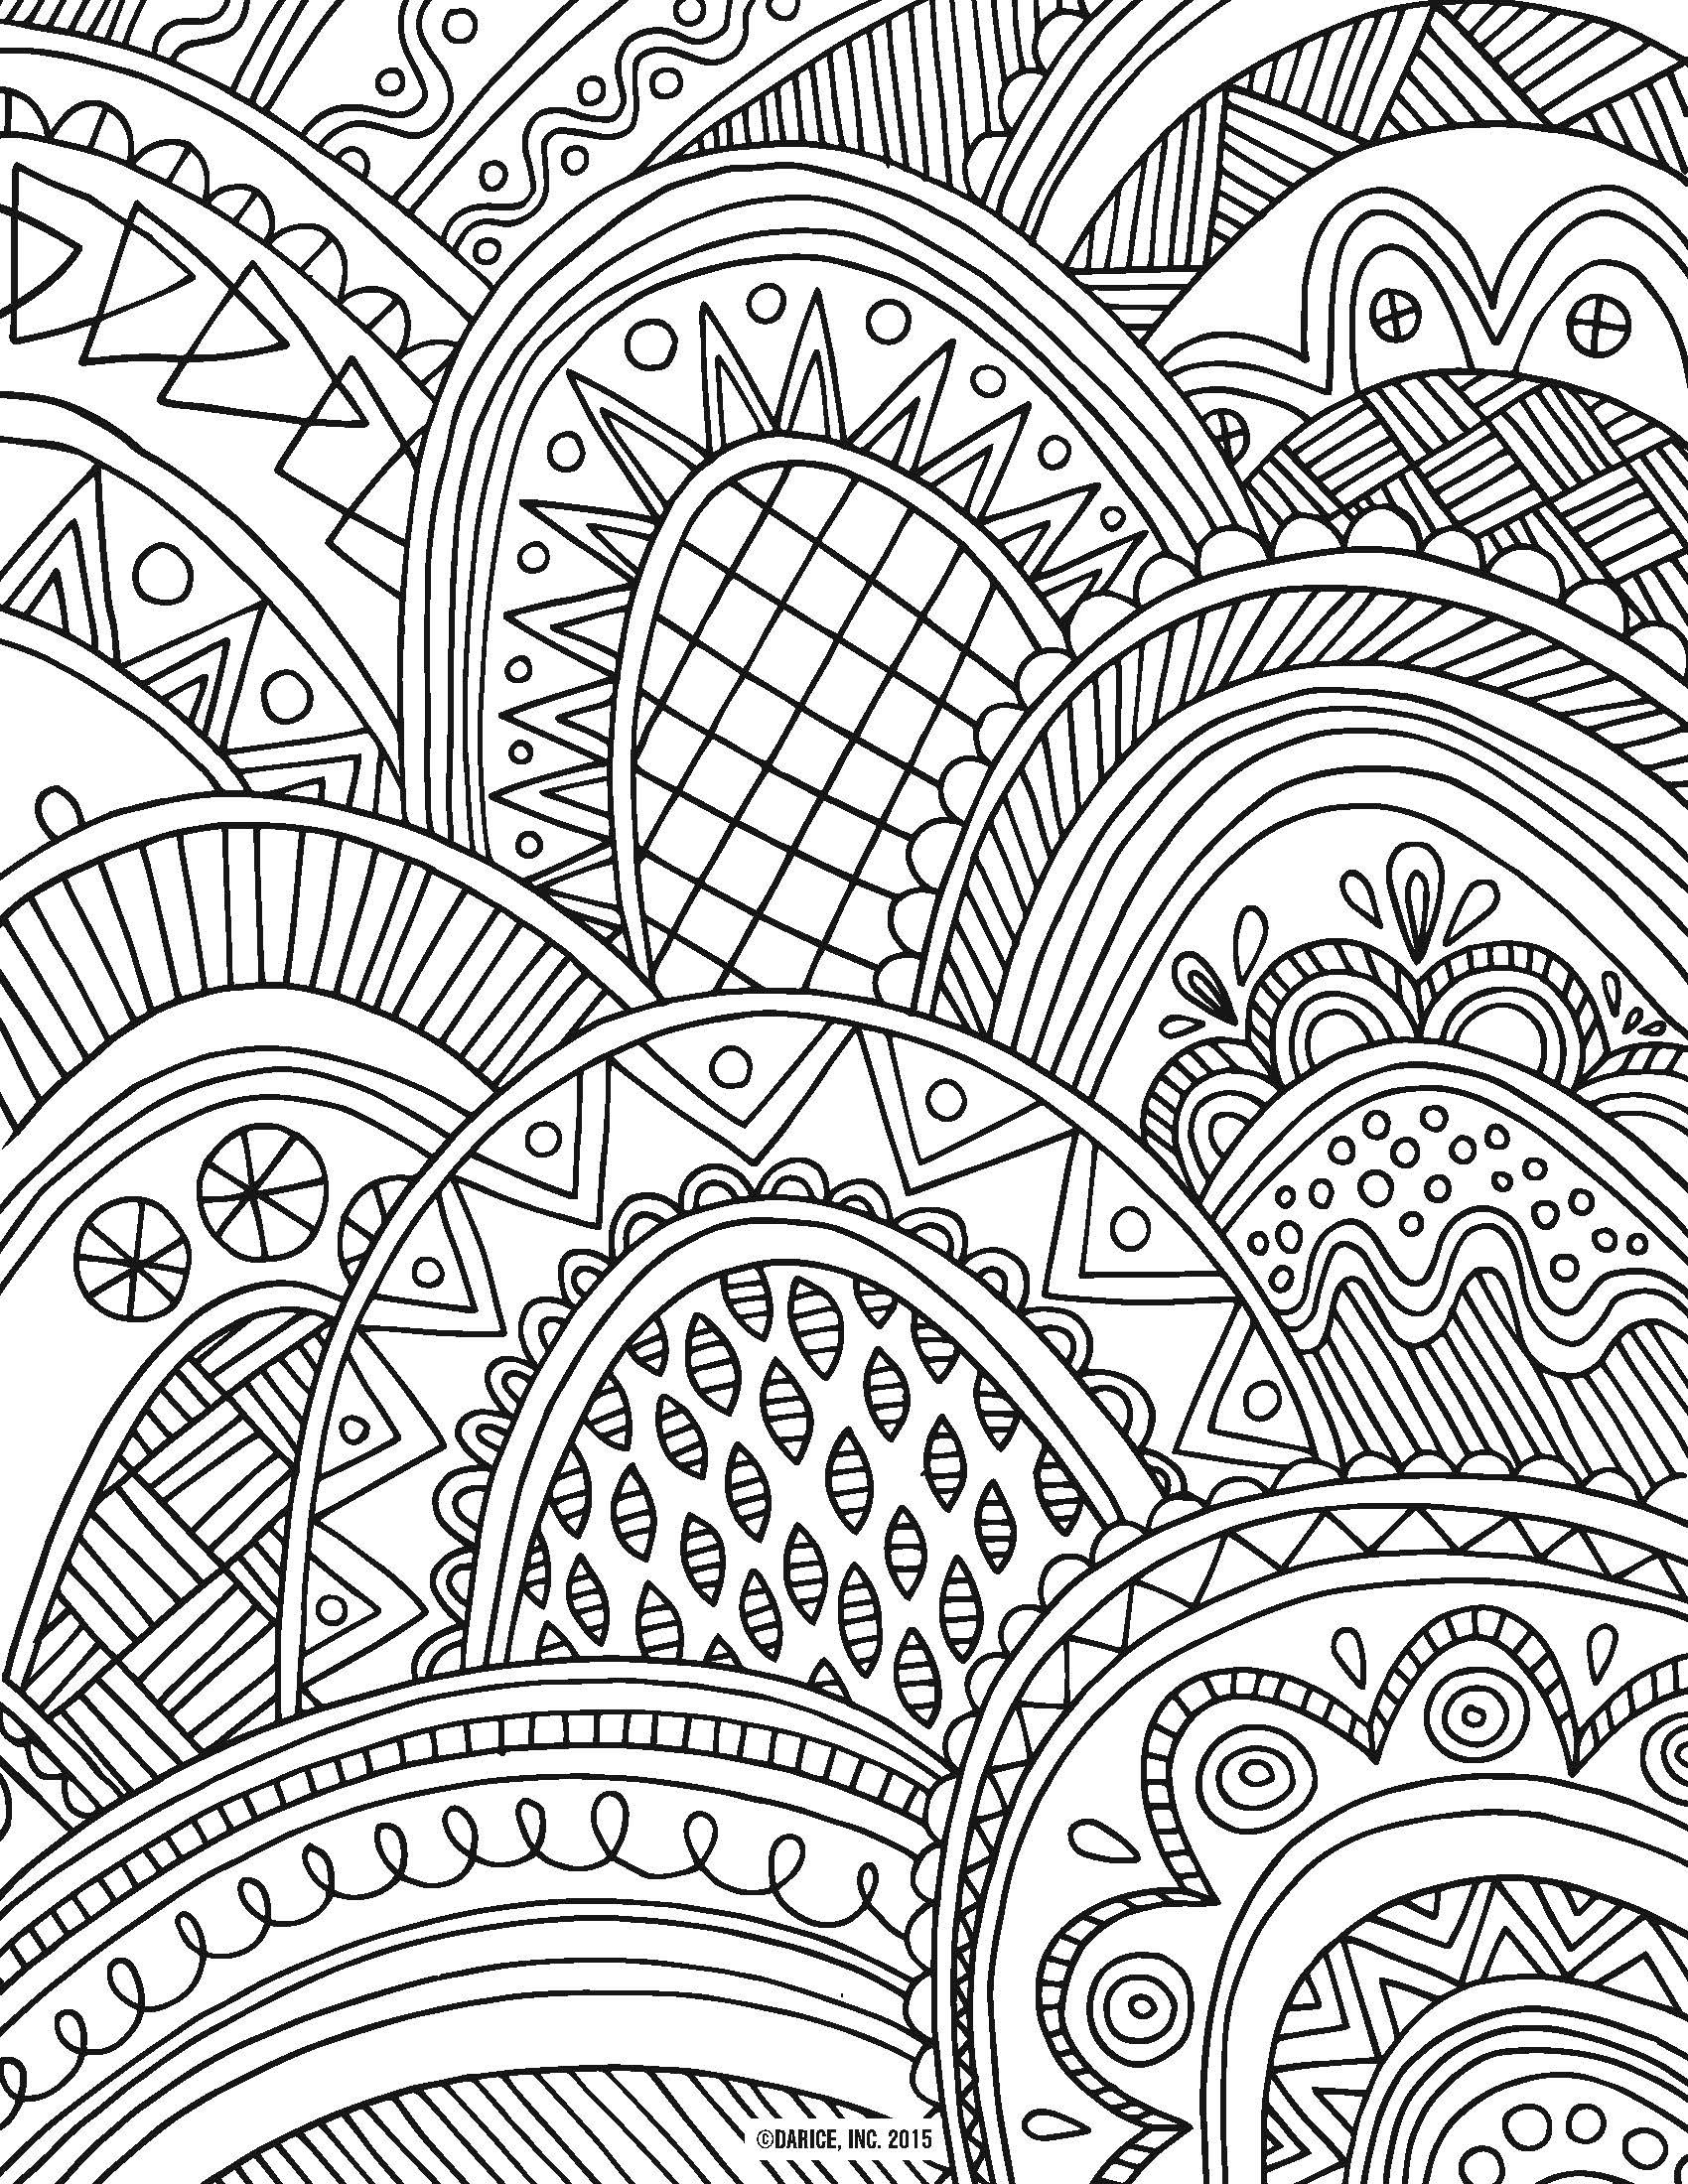 Best ideas about Print Free Coloring Pages . Save or Pin 9 Free Printable Adult Coloring Pages Now.